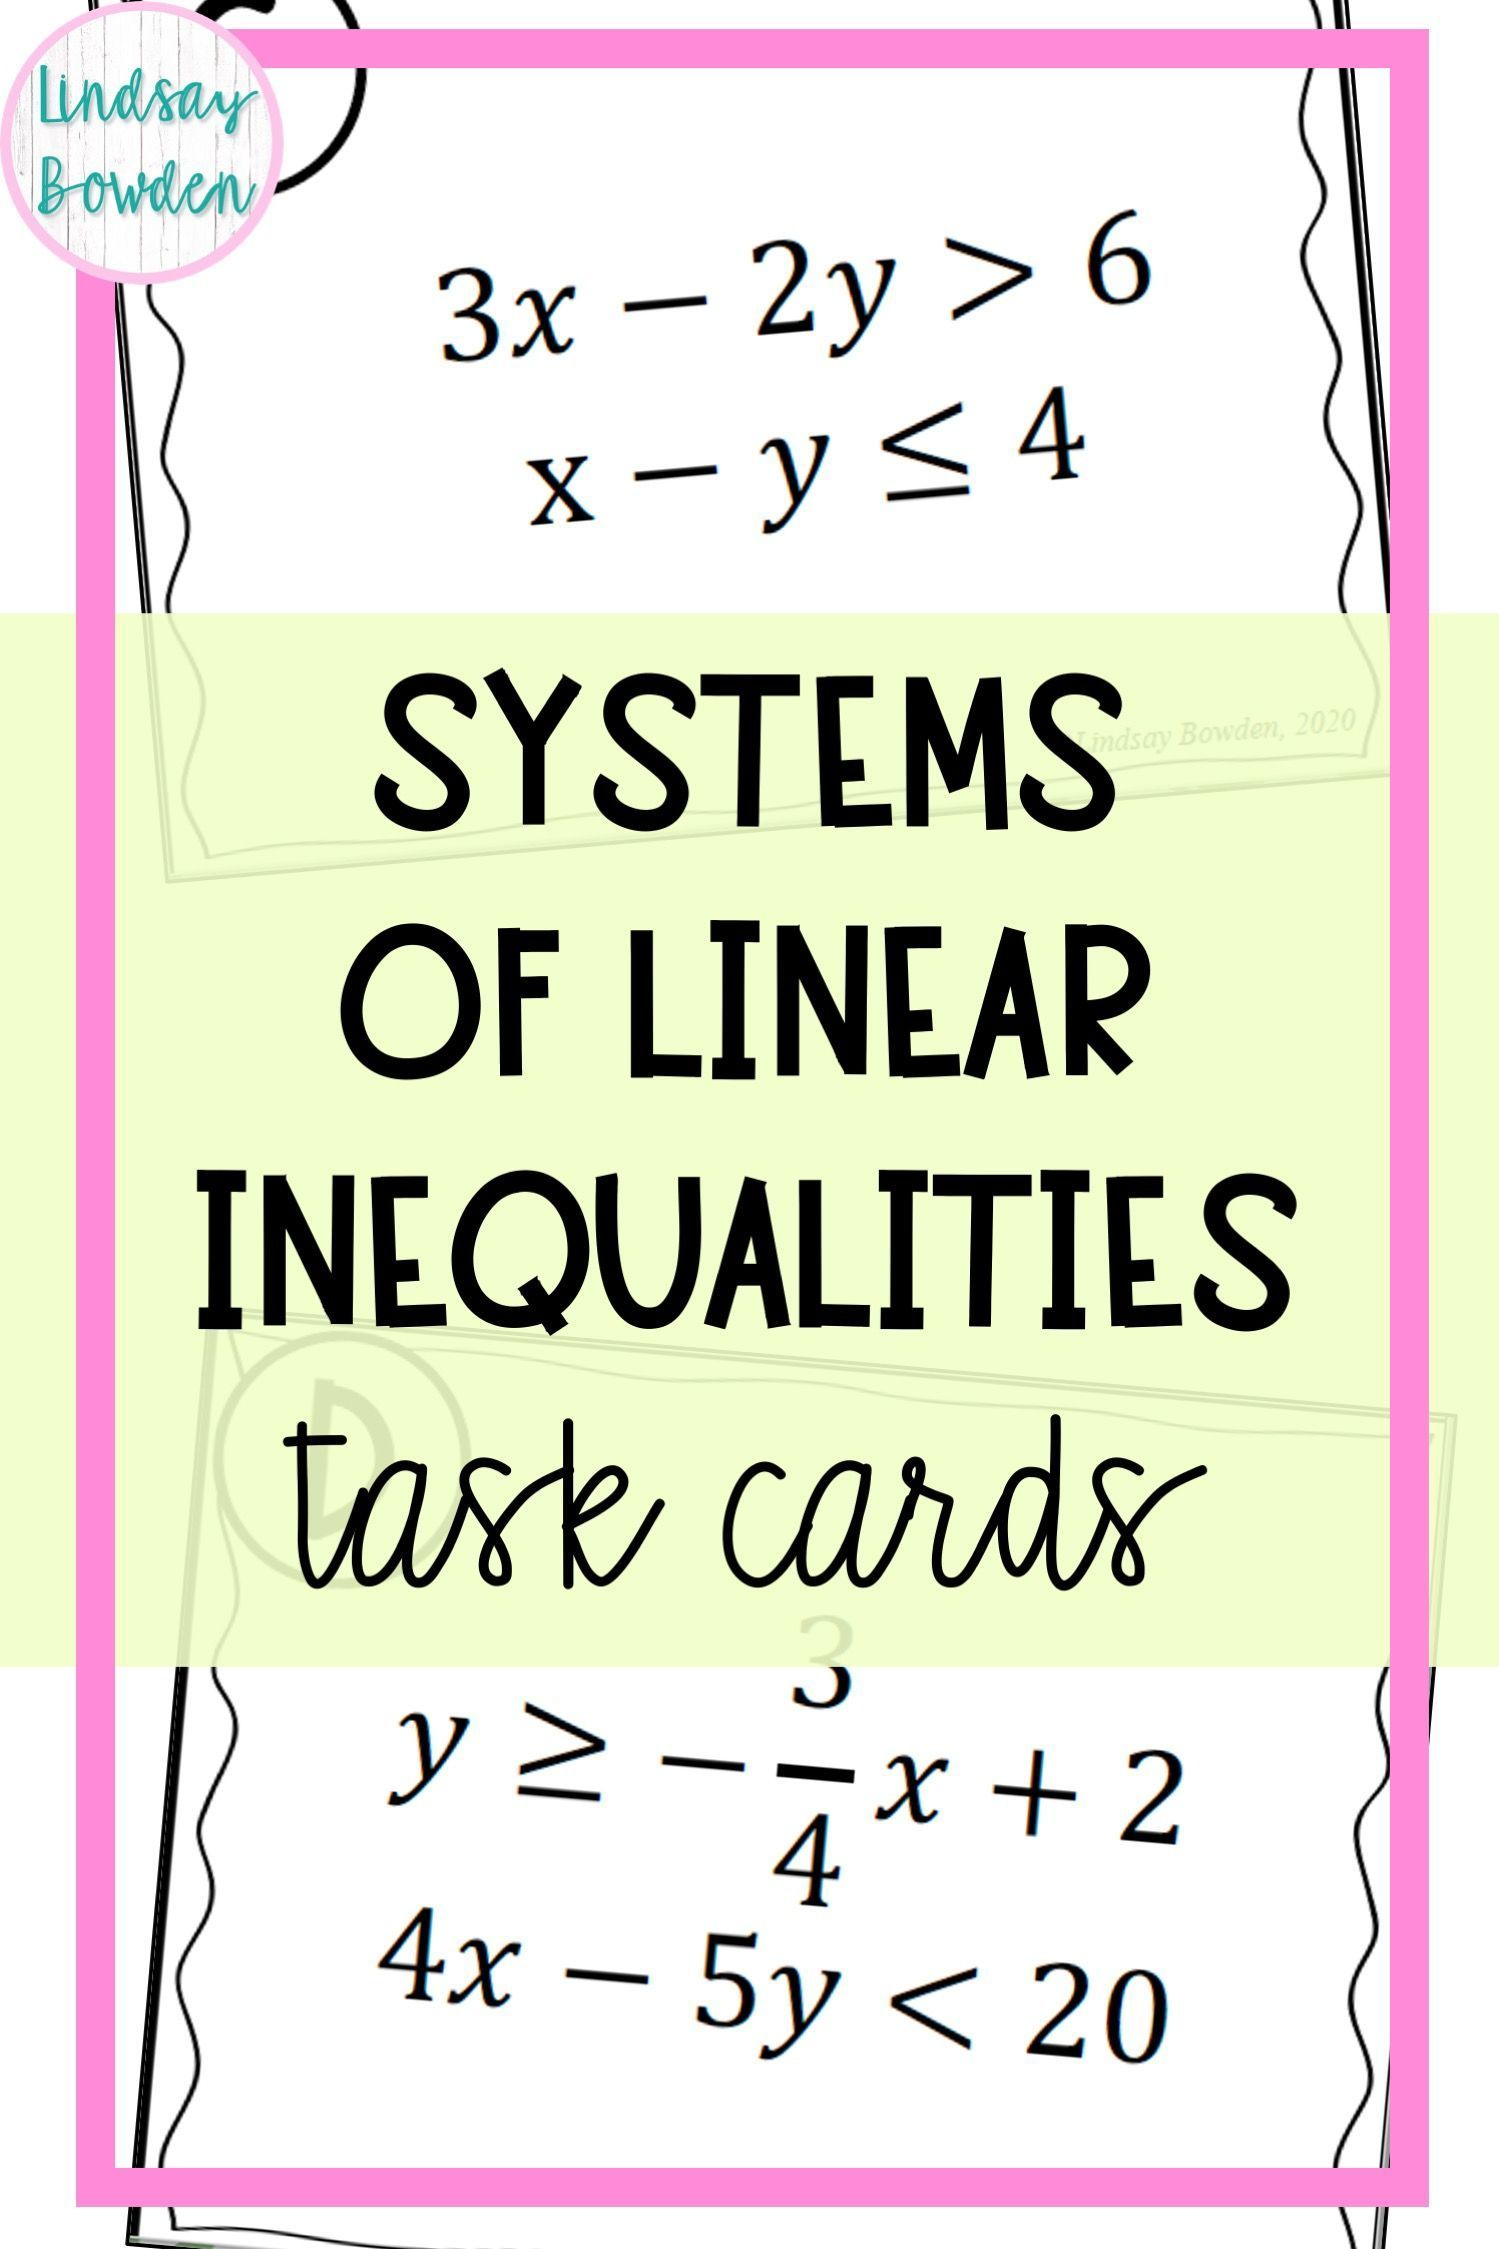 Systems Of Linear Inequalities Task Cards Algebra Activities High School Task Cards Linear Inequalities